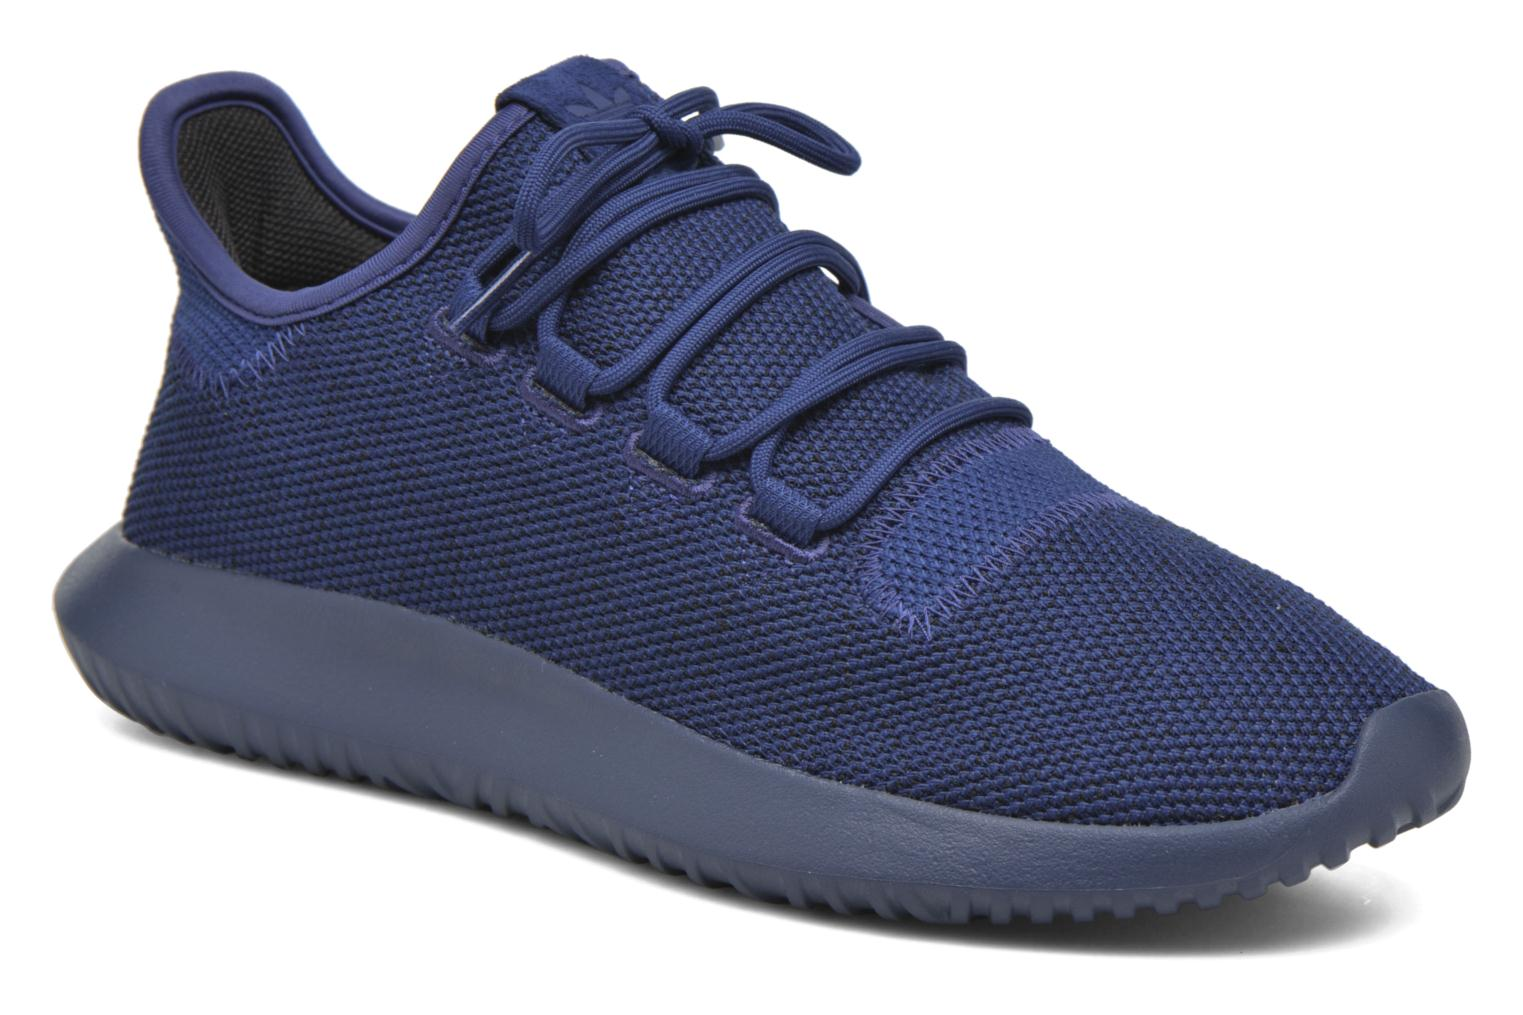 Baskets Adidas Originals Tubular Shadow Knit Bleu vue détail/paire